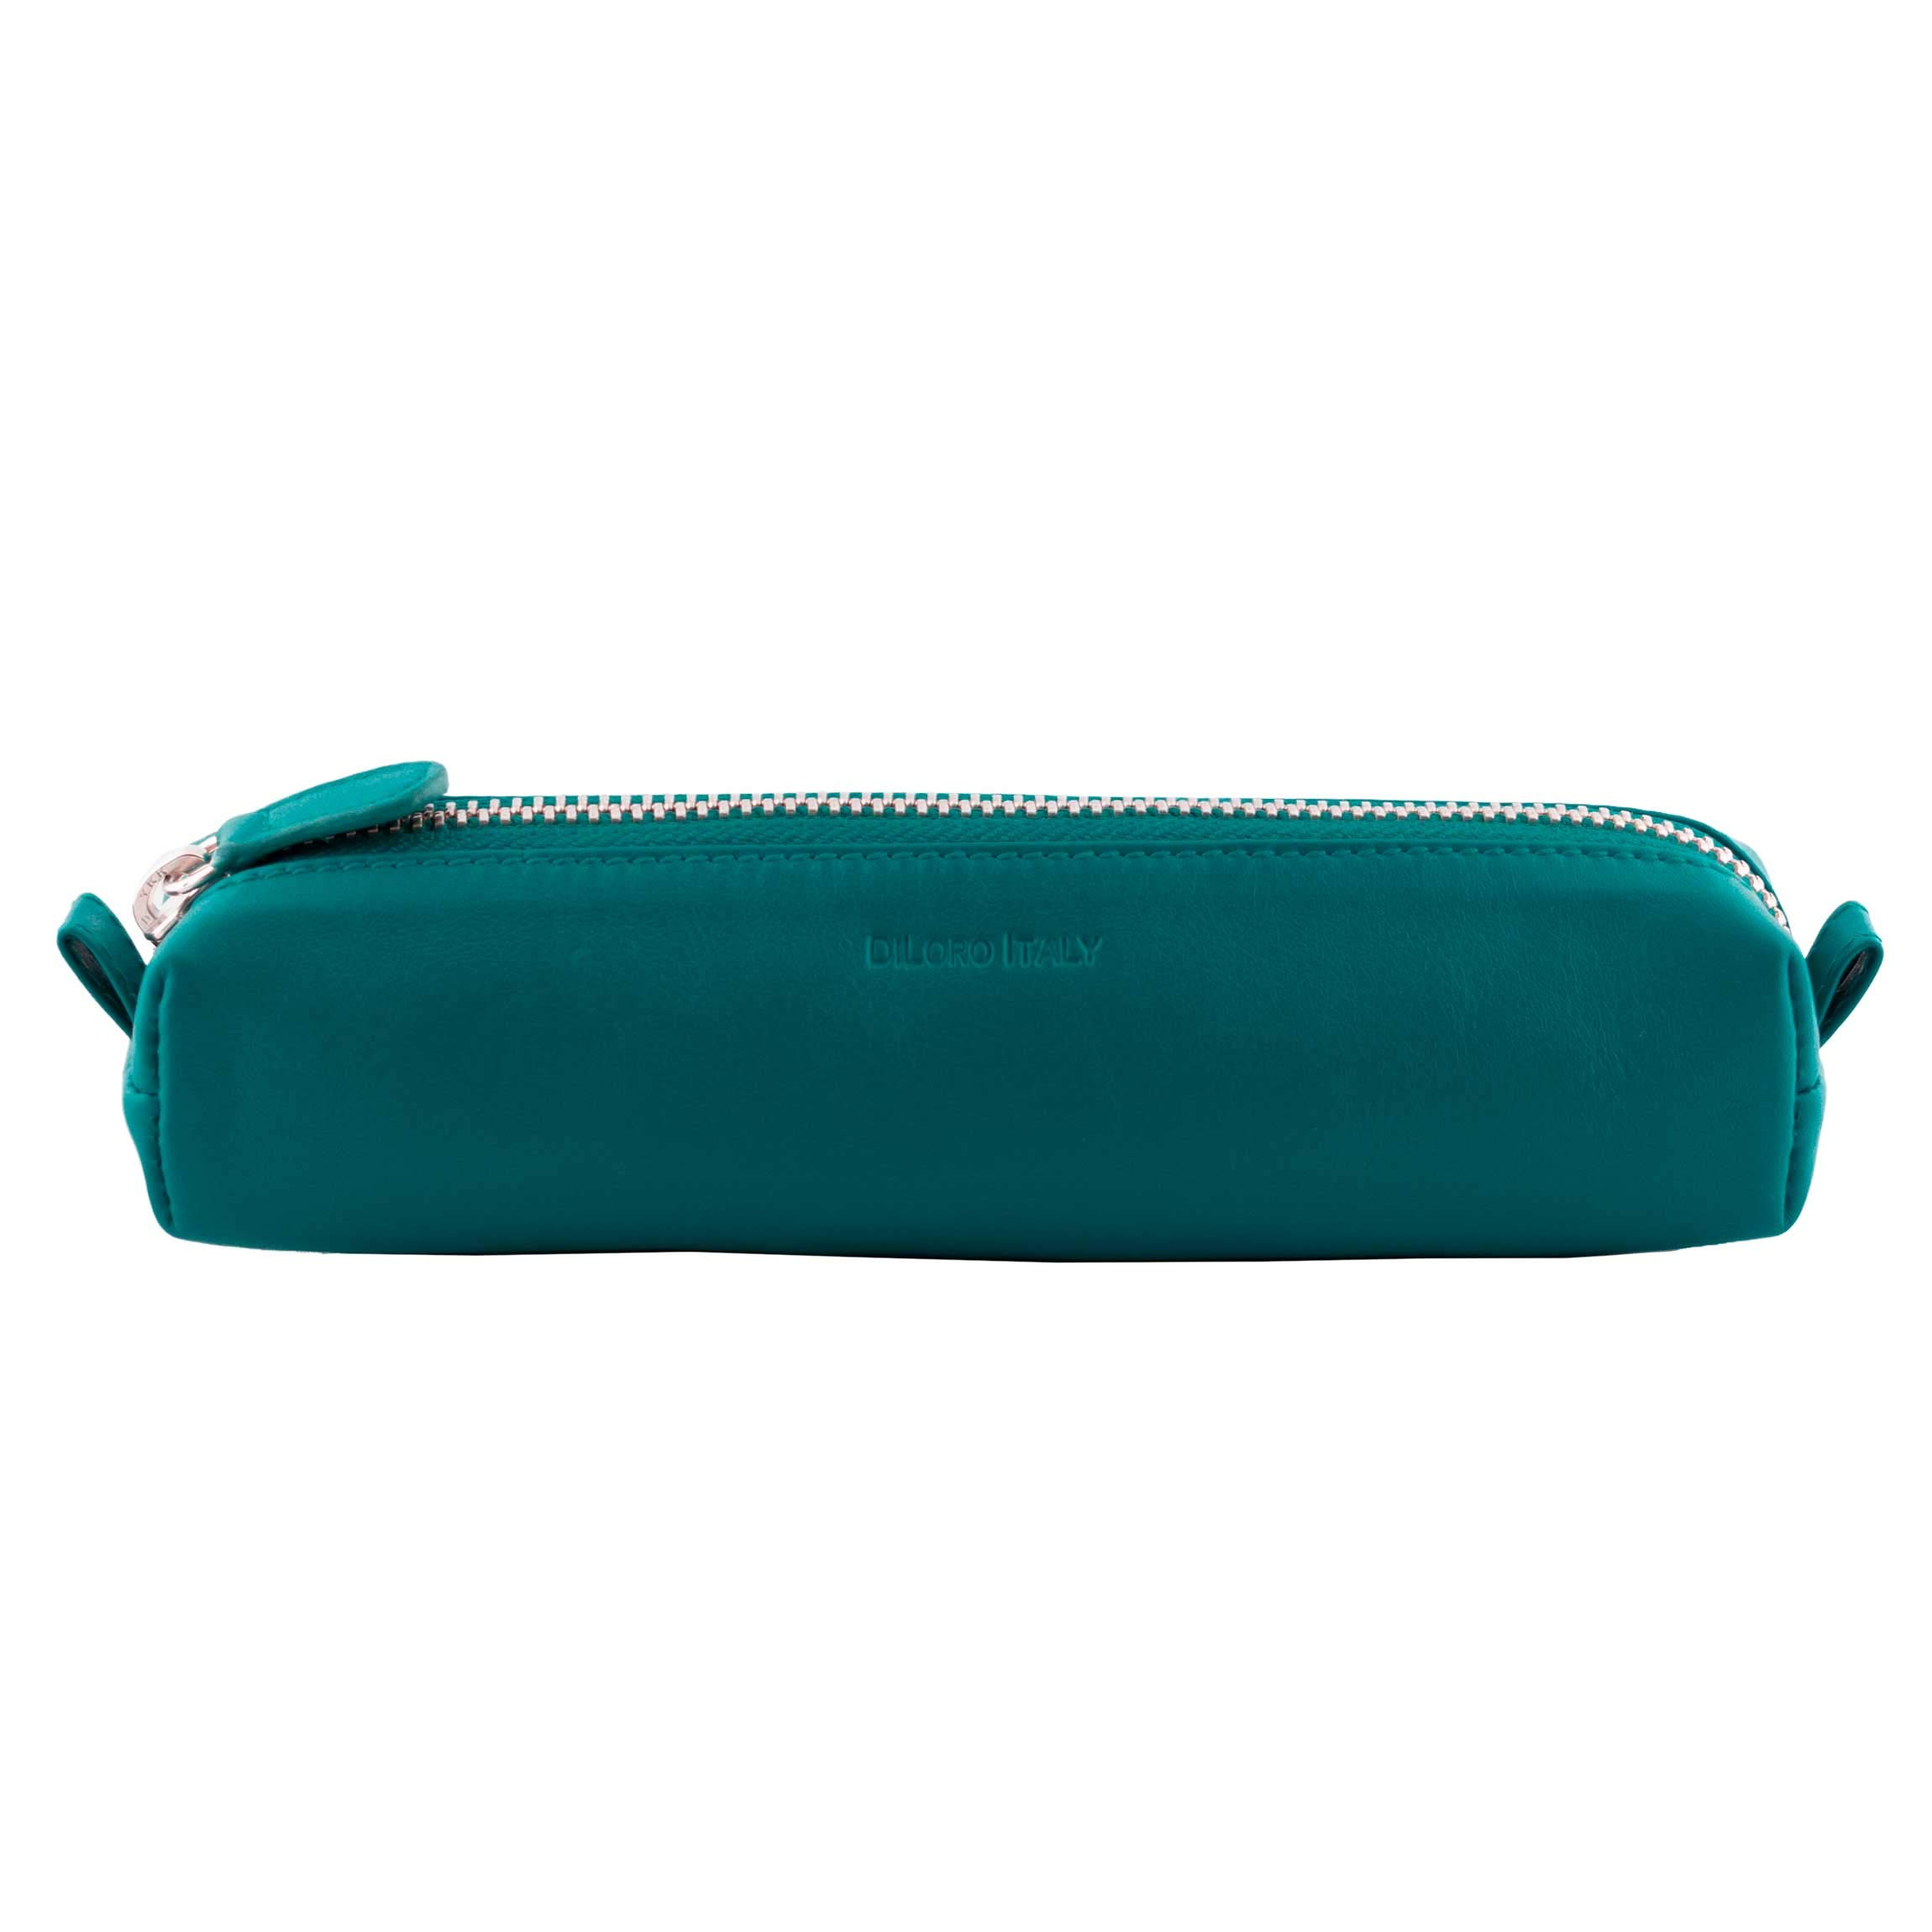 DiLoro Leather Zippered Fountain Ballpoint Rollerball Pens and Pencils Case Holder Pouch Genuine Full Grain Soft Nappa Leather (Turquoise Green)